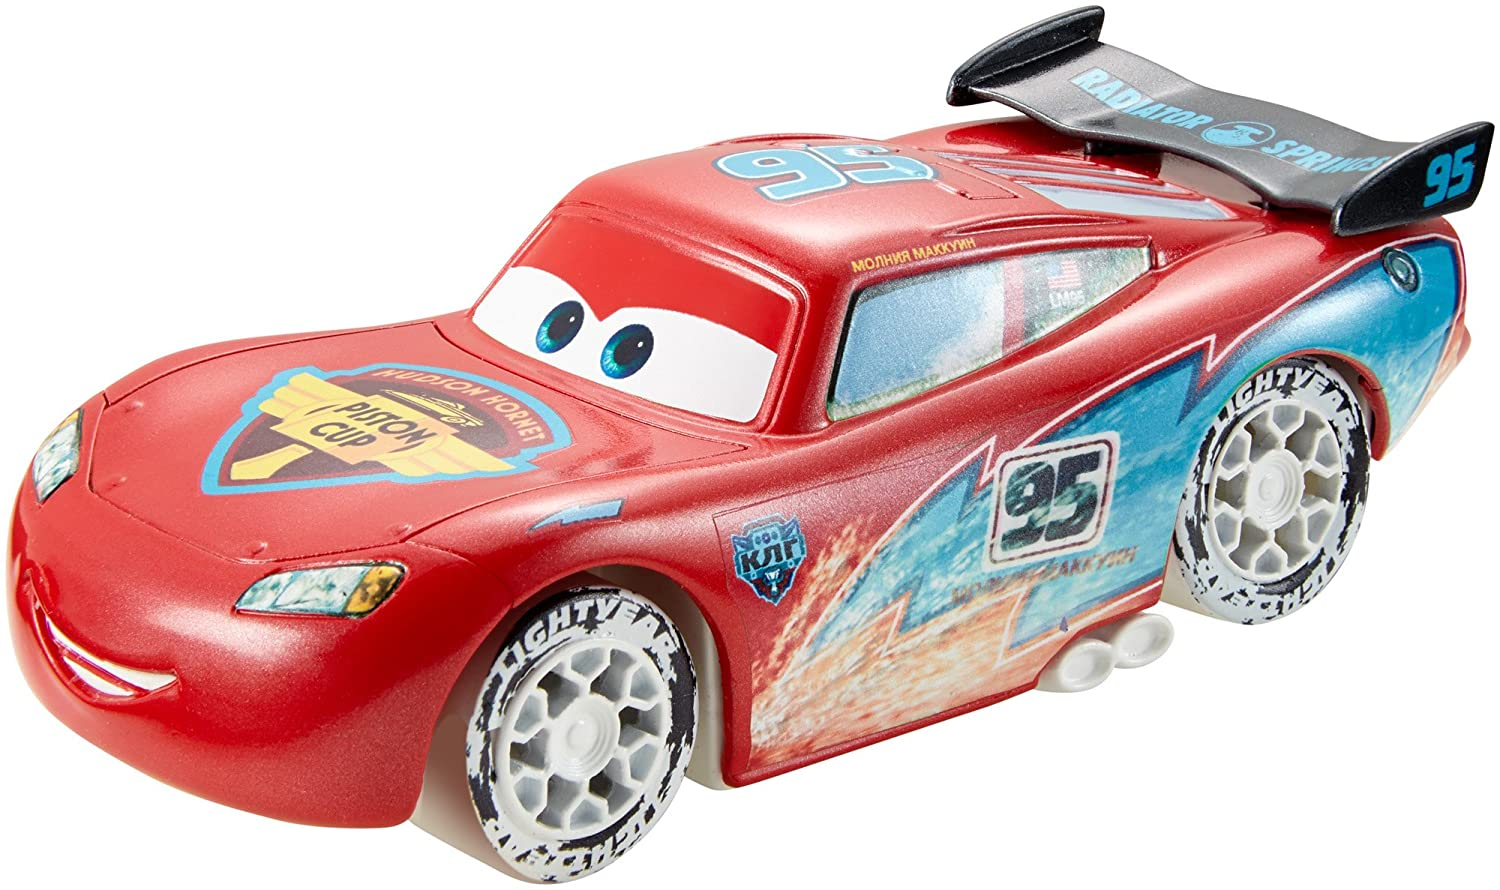 Amazon.com Disney/Pixar Cars Ice Drifters 143 Scale Pullback Drifter Vehicle Lightning McQueen Toys u0026 Games  sc 1 st  Amazon.com & Amazon.com: Disney/Pixar Cars Ice Drifters 1:43 Scale Pullback ... azcodes.com